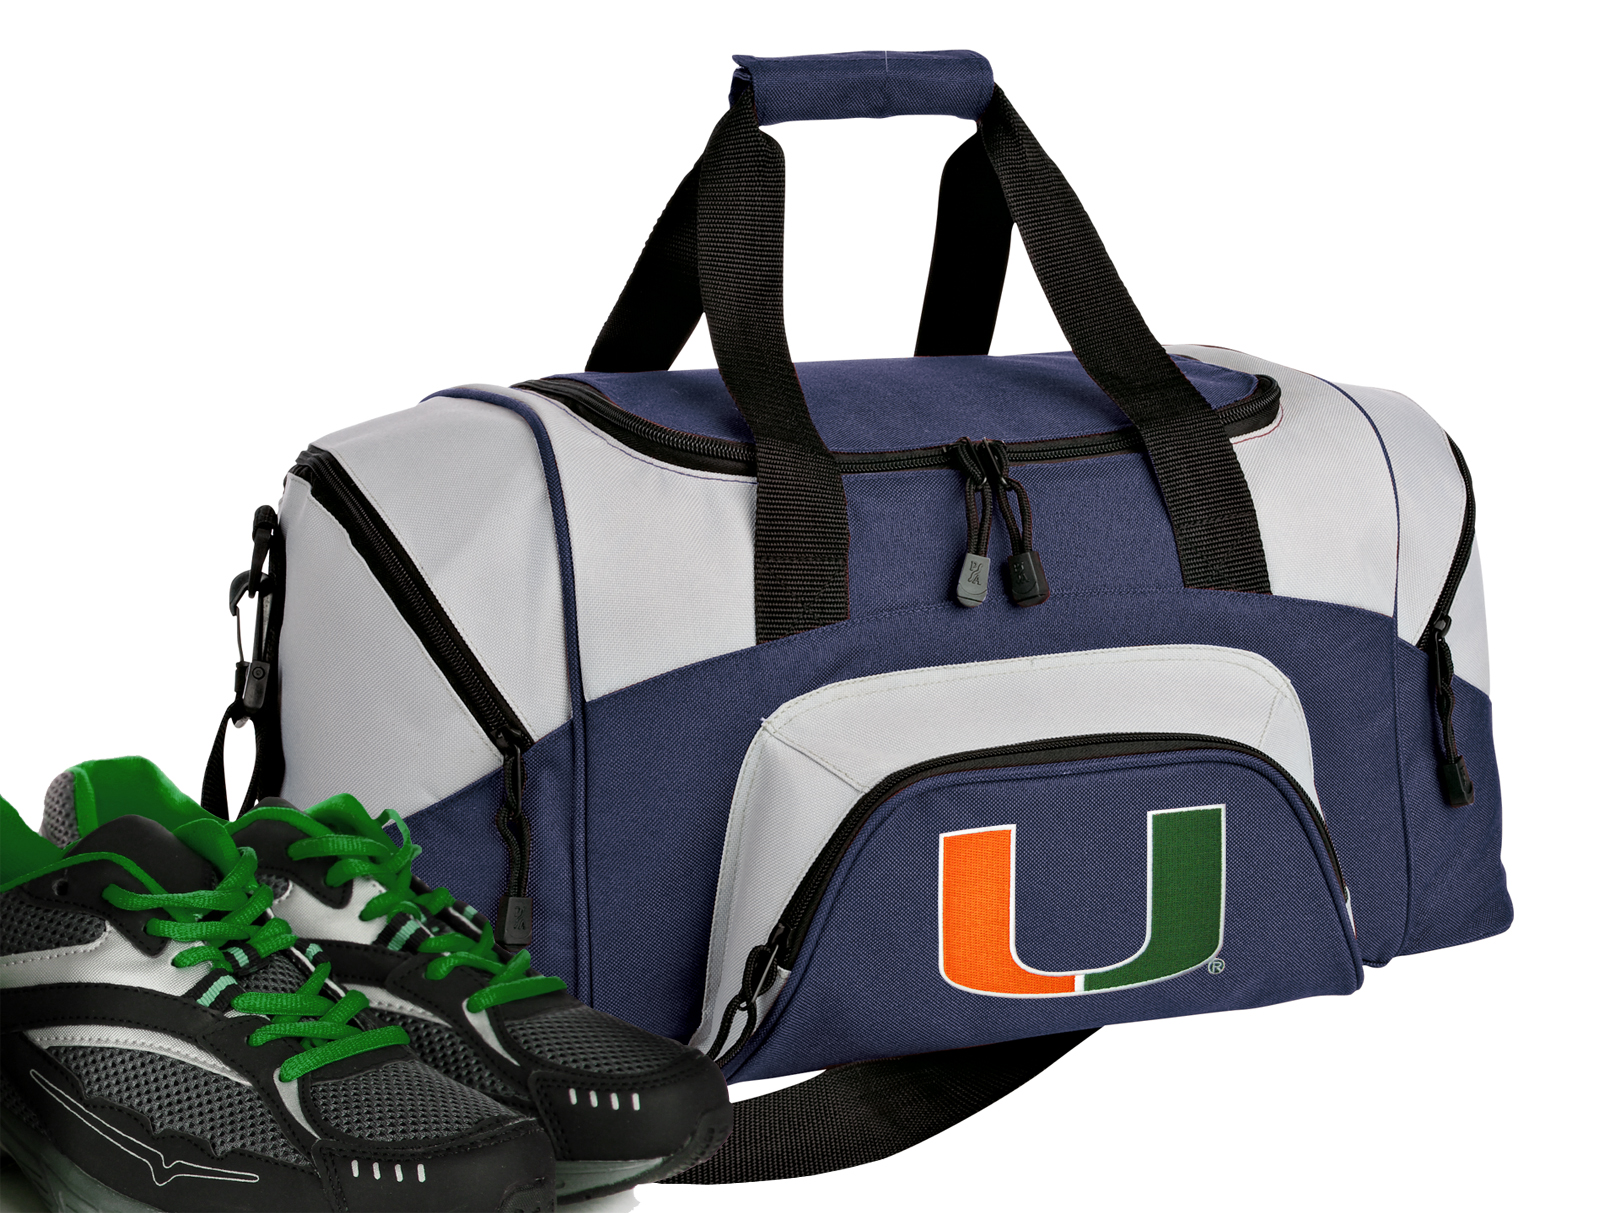 Small University of Miami Duffle Bag or Small Miami Gym Bags by